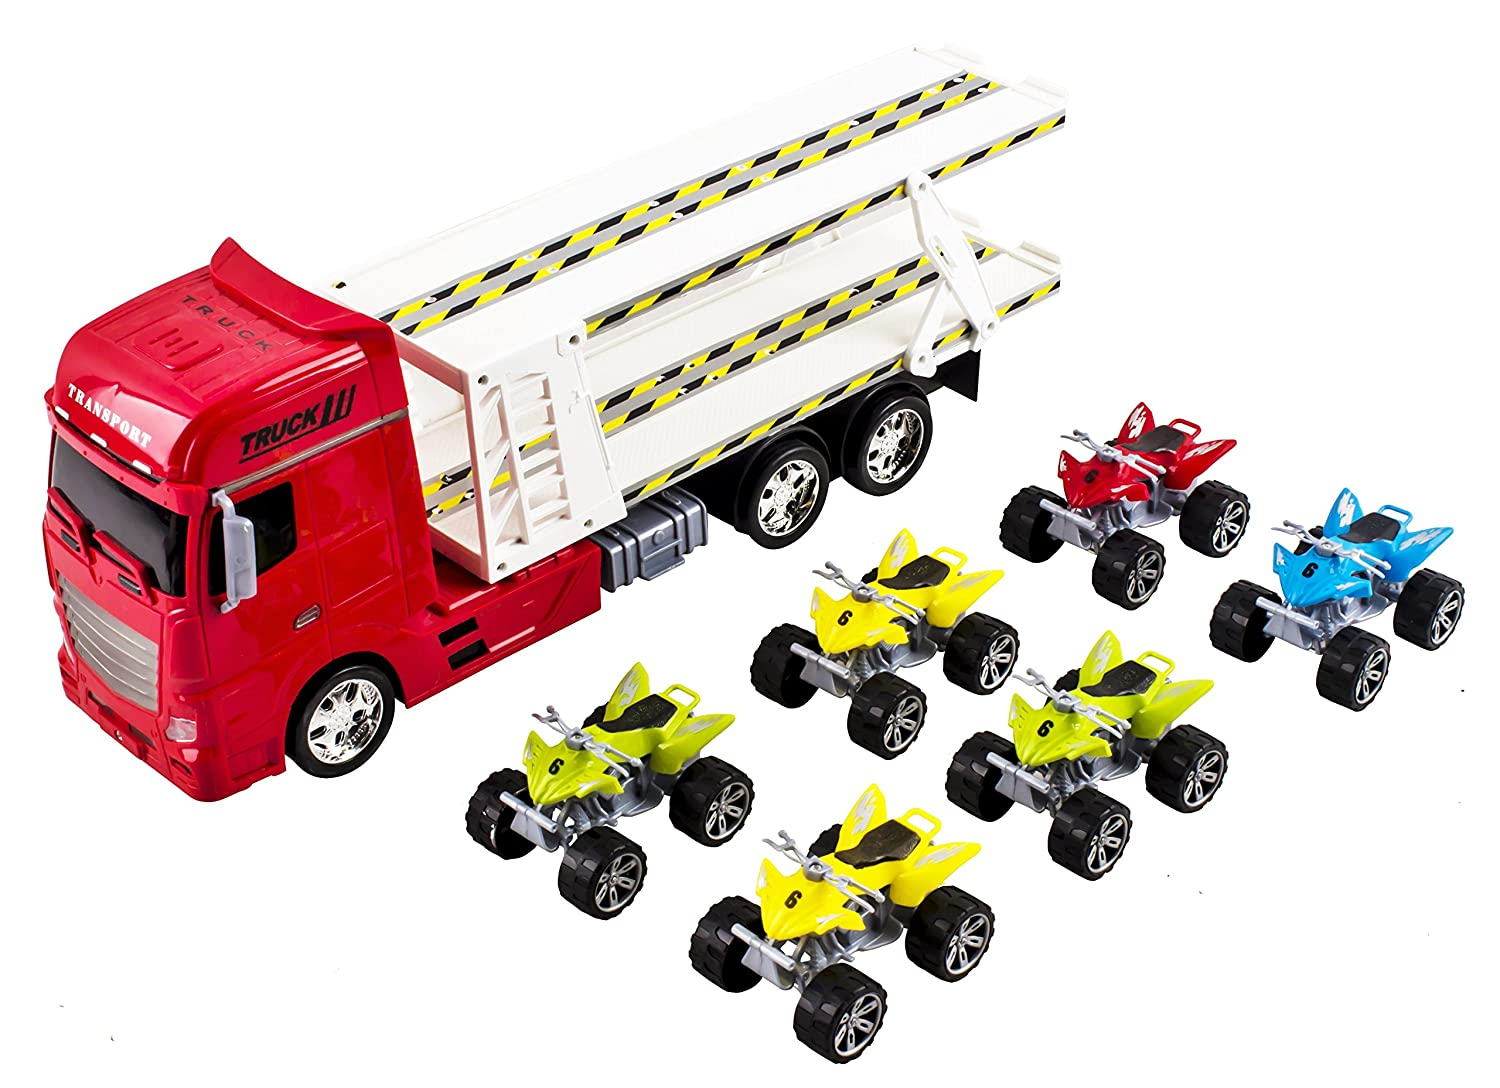 Amazon.com: Large Toy Semi Truck Toy Truck Big Rig Long Trailer ...